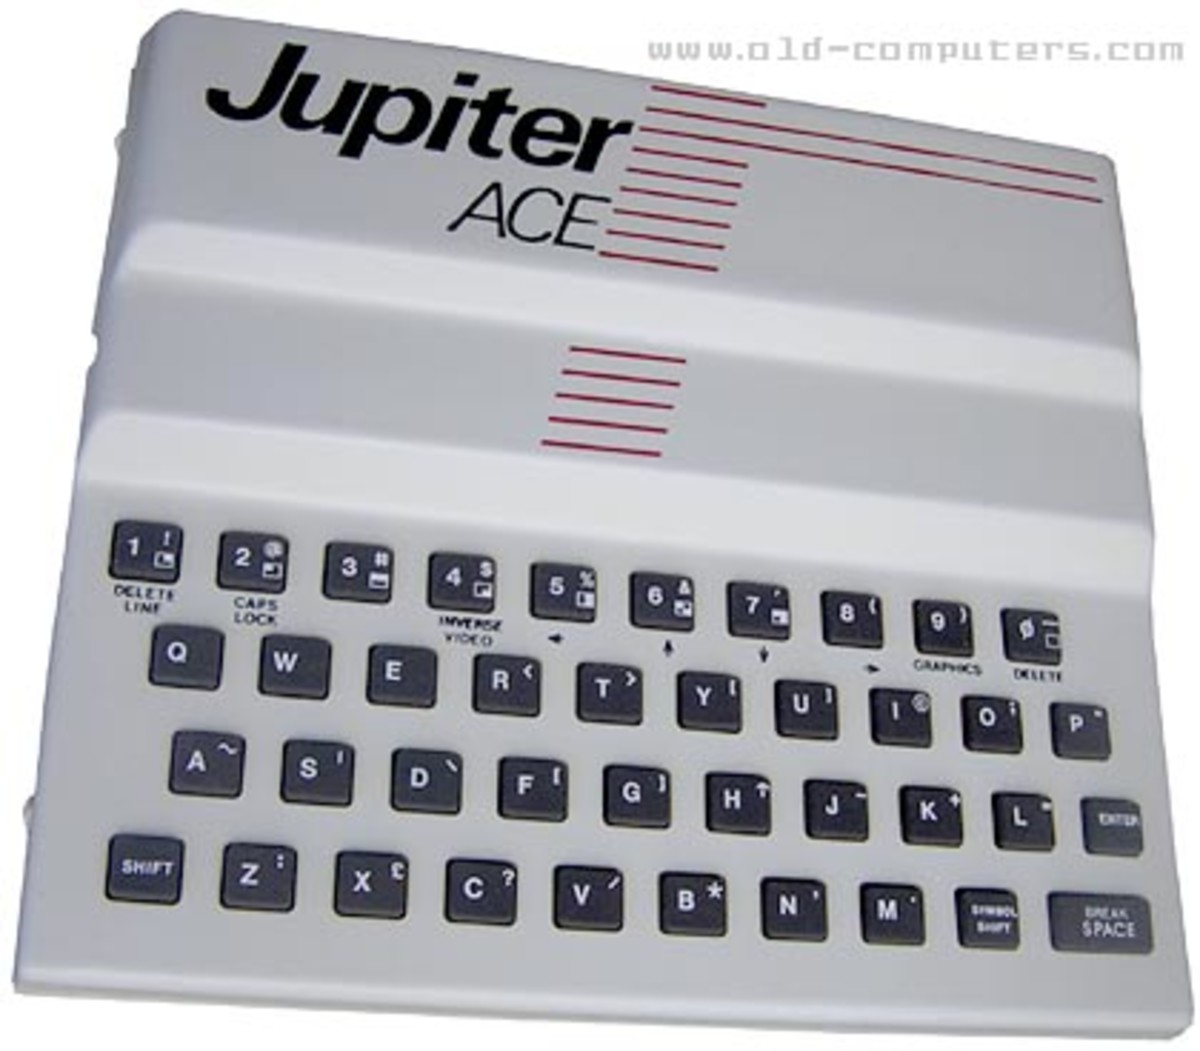 How fast could you type on one of these? The Jupiter Ace